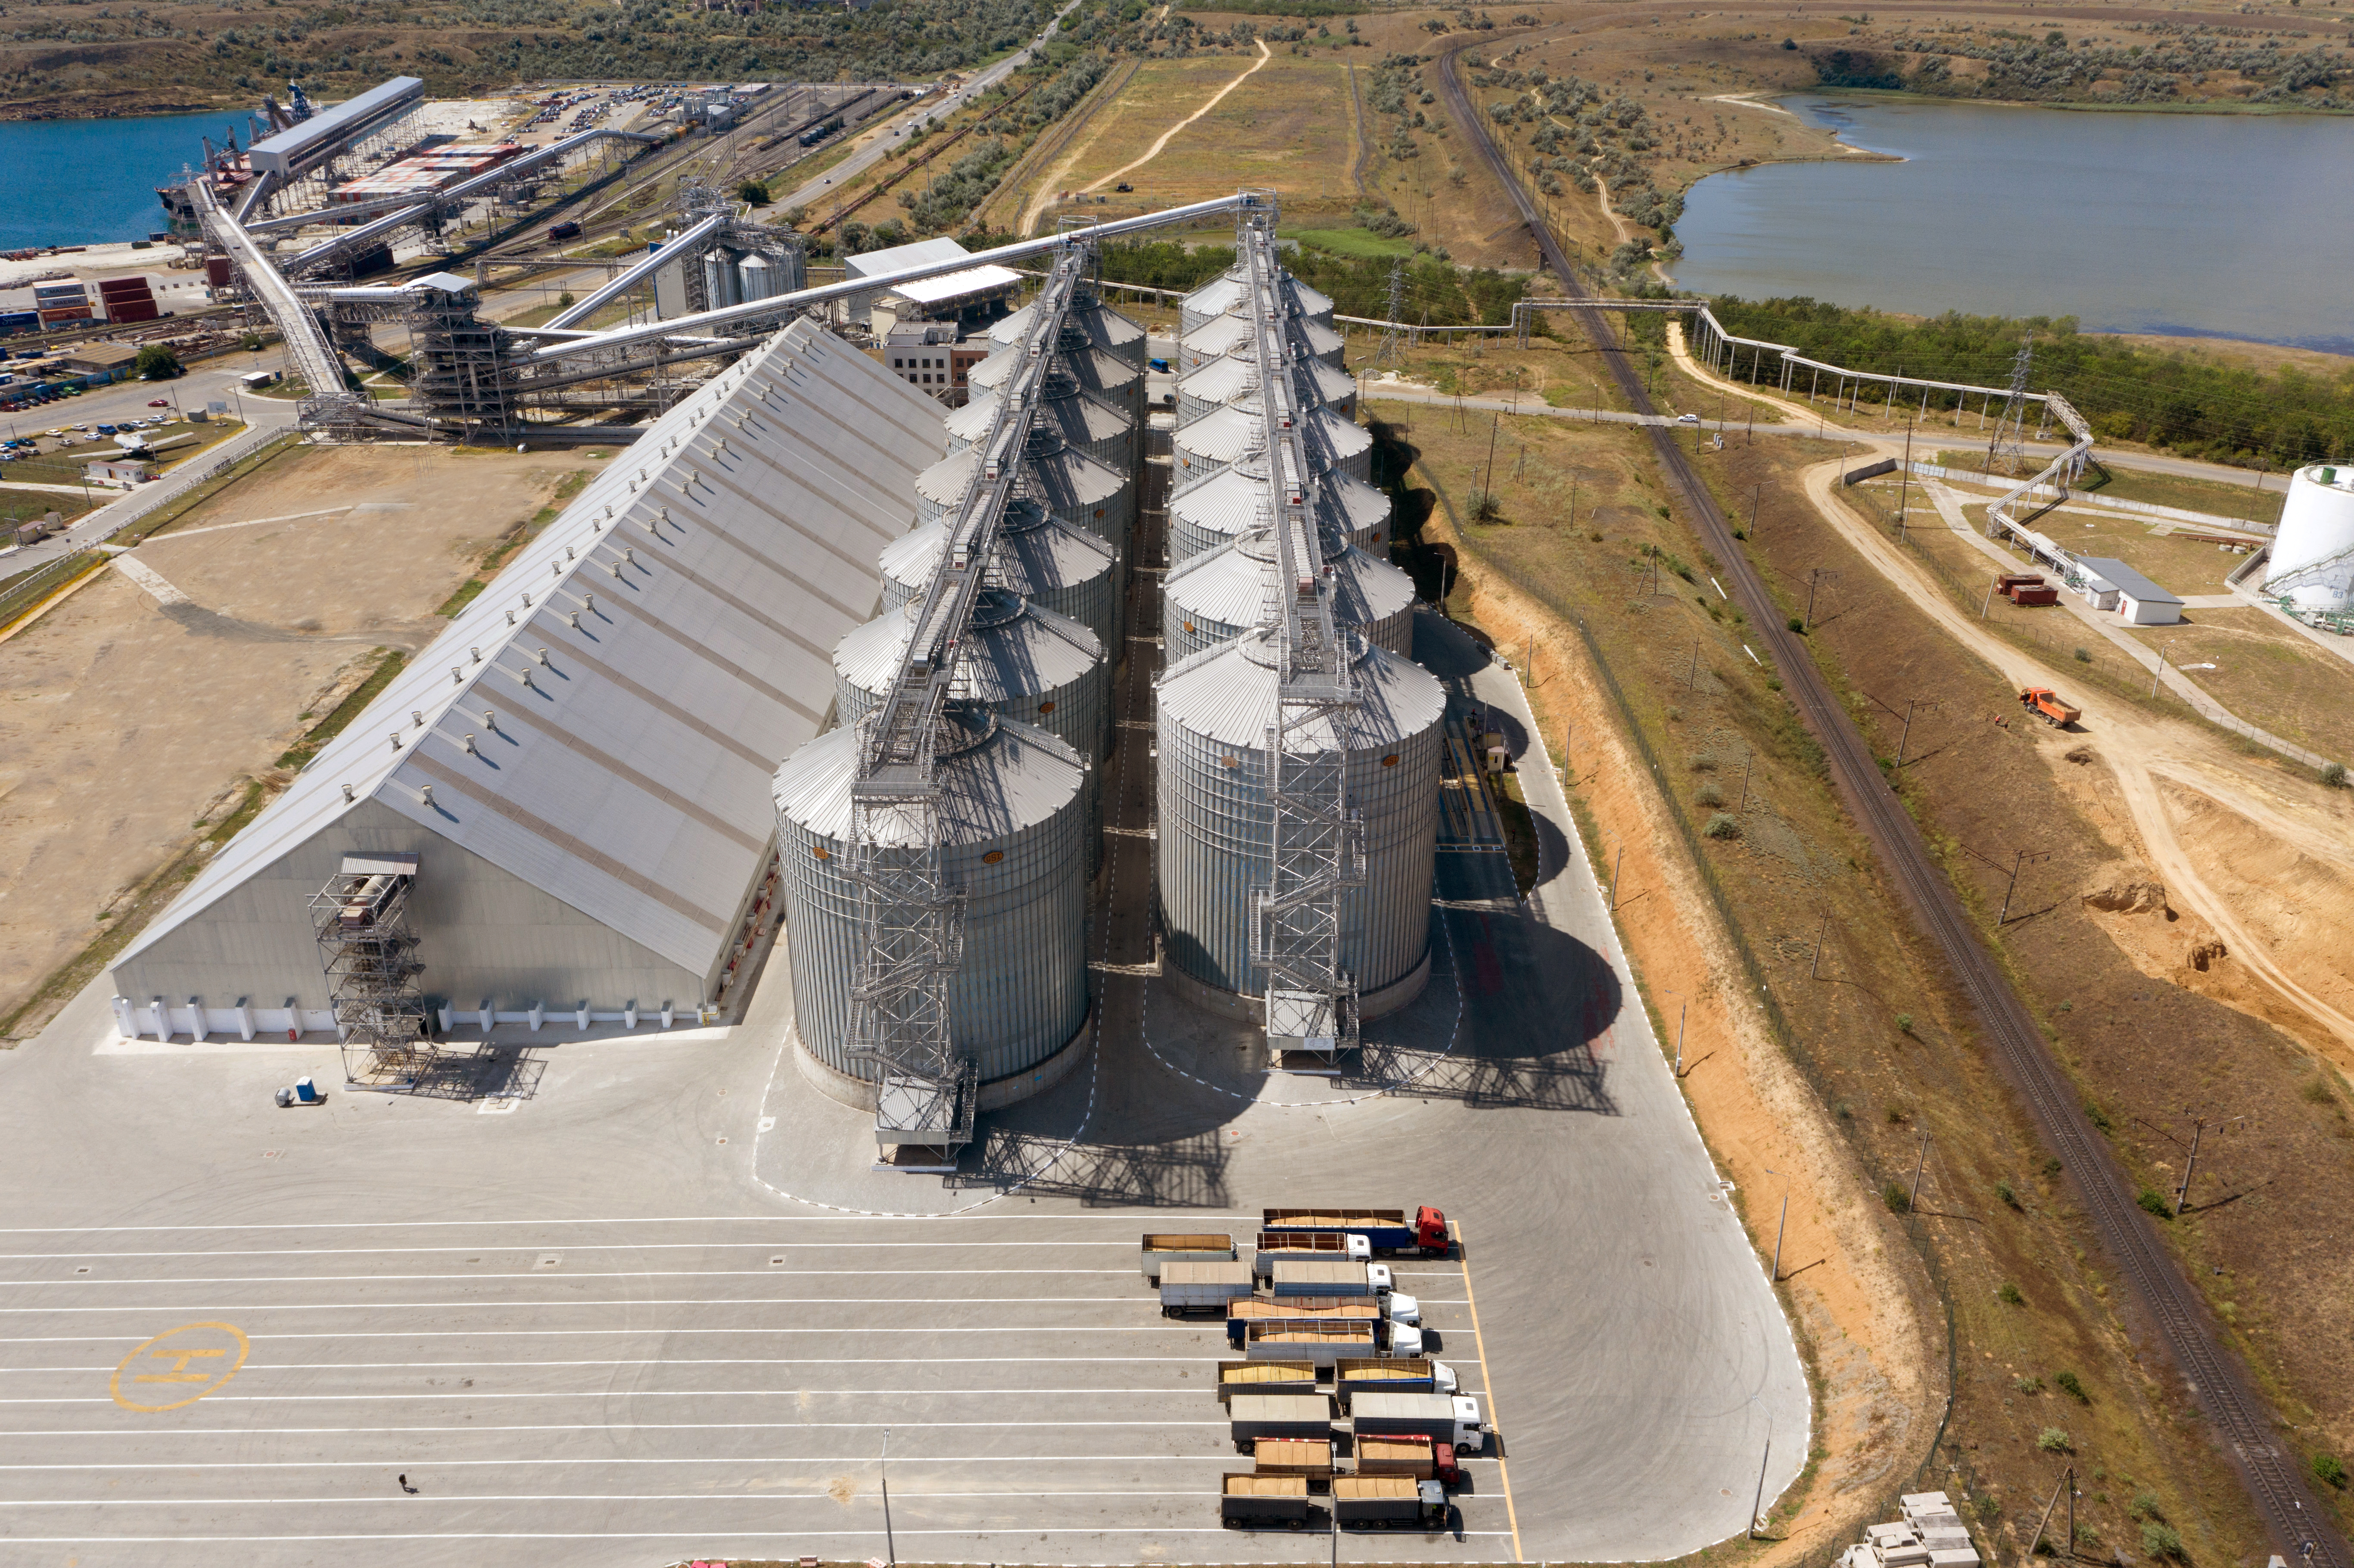 Overview of the Neptune grain terminal, as of August 2020